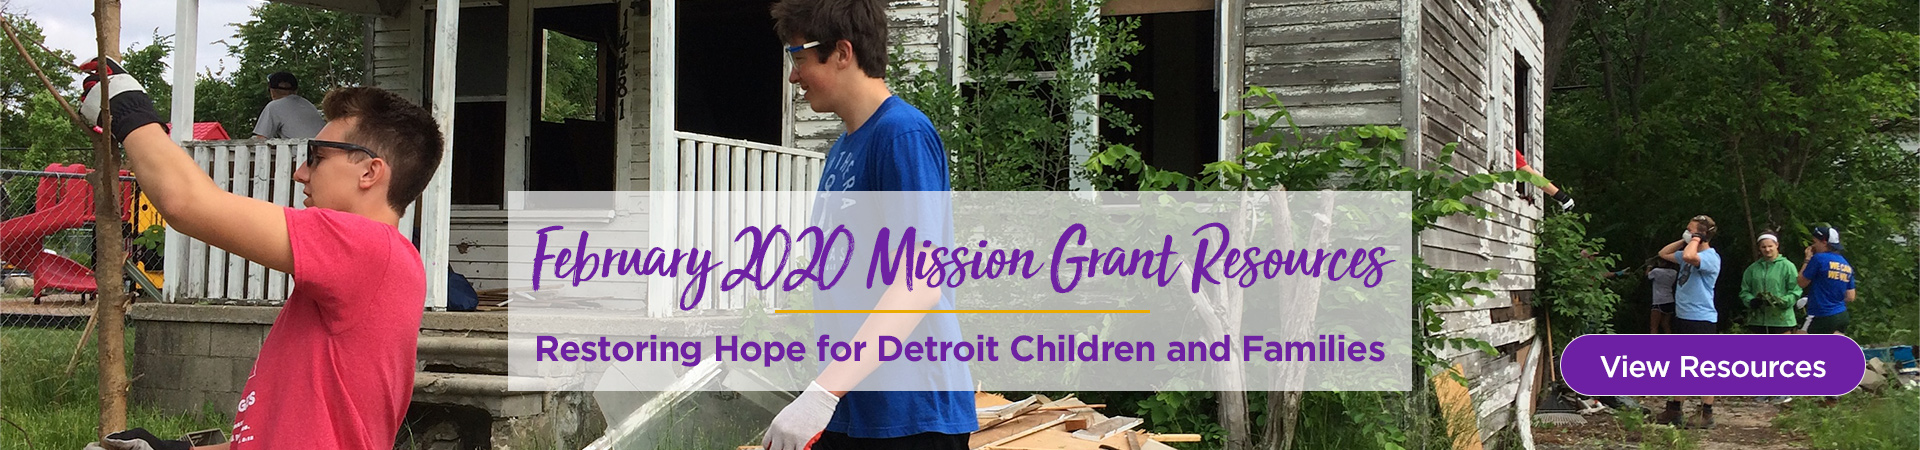 February Mission Grant Resources: Restoring Hope for Detroit Children and Families